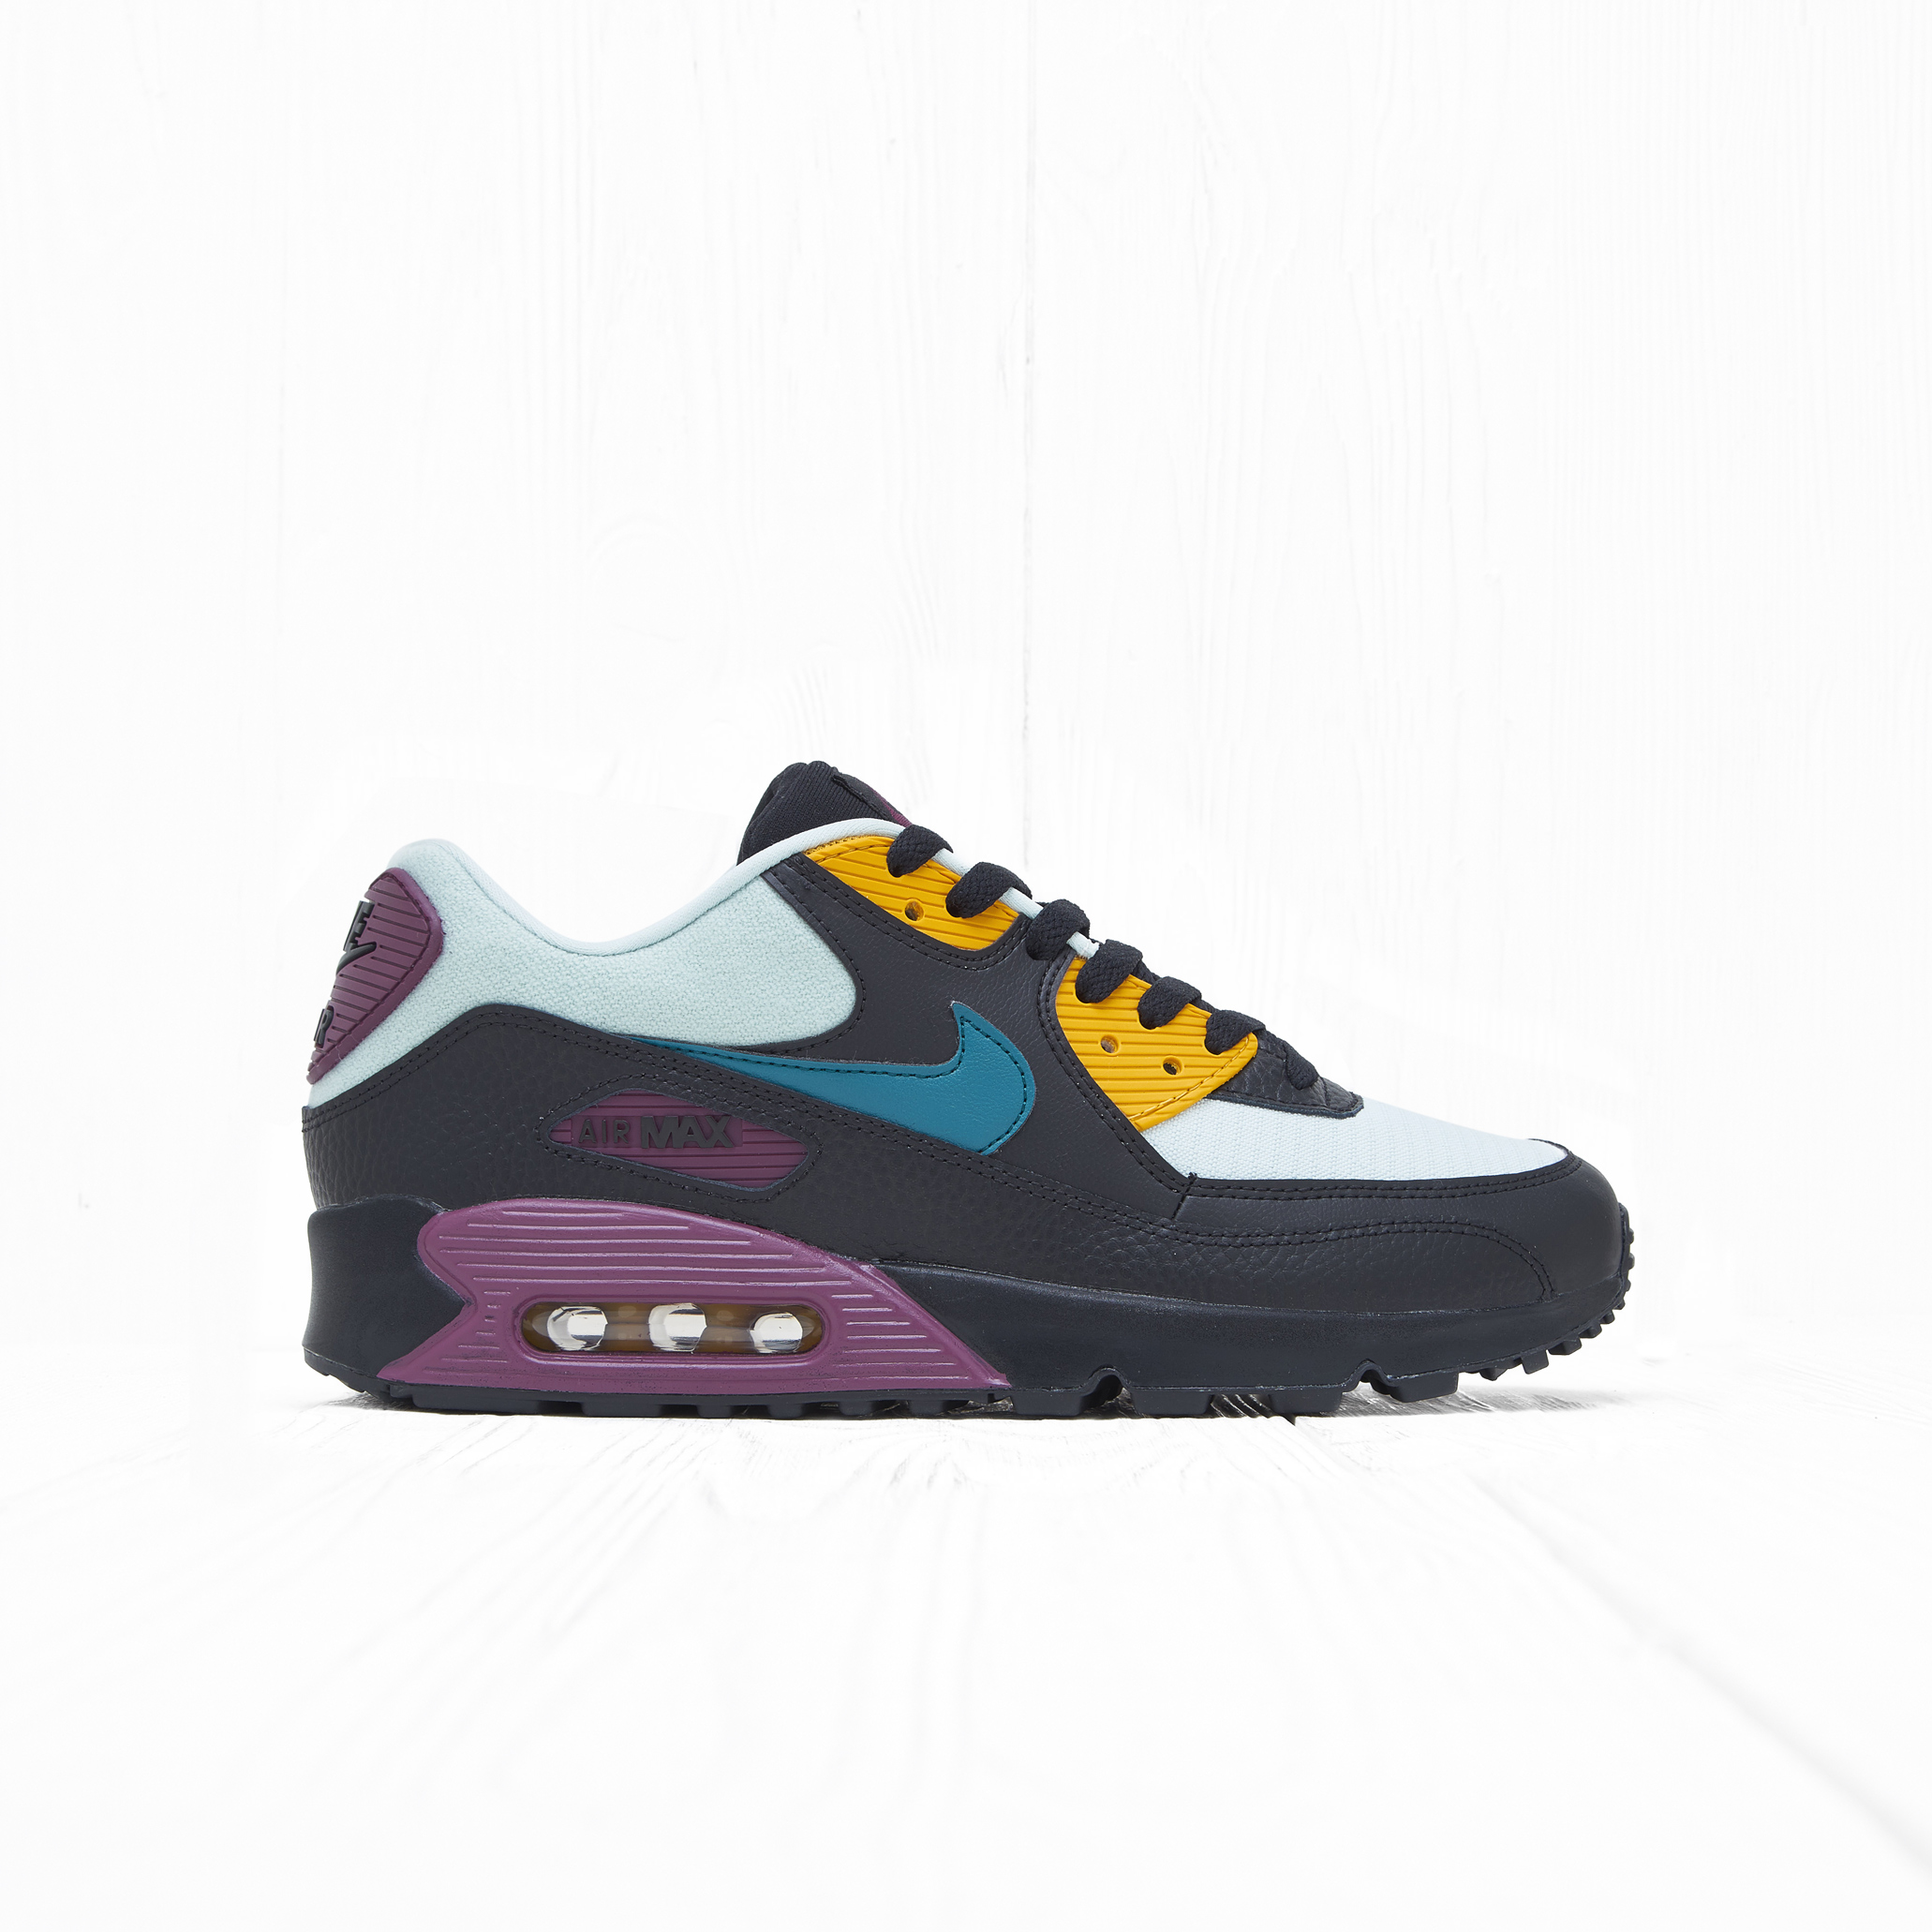 Кроссовки Nike W AIR MAX 90 Black/Geode Teal-Light Silver-Bordeaux